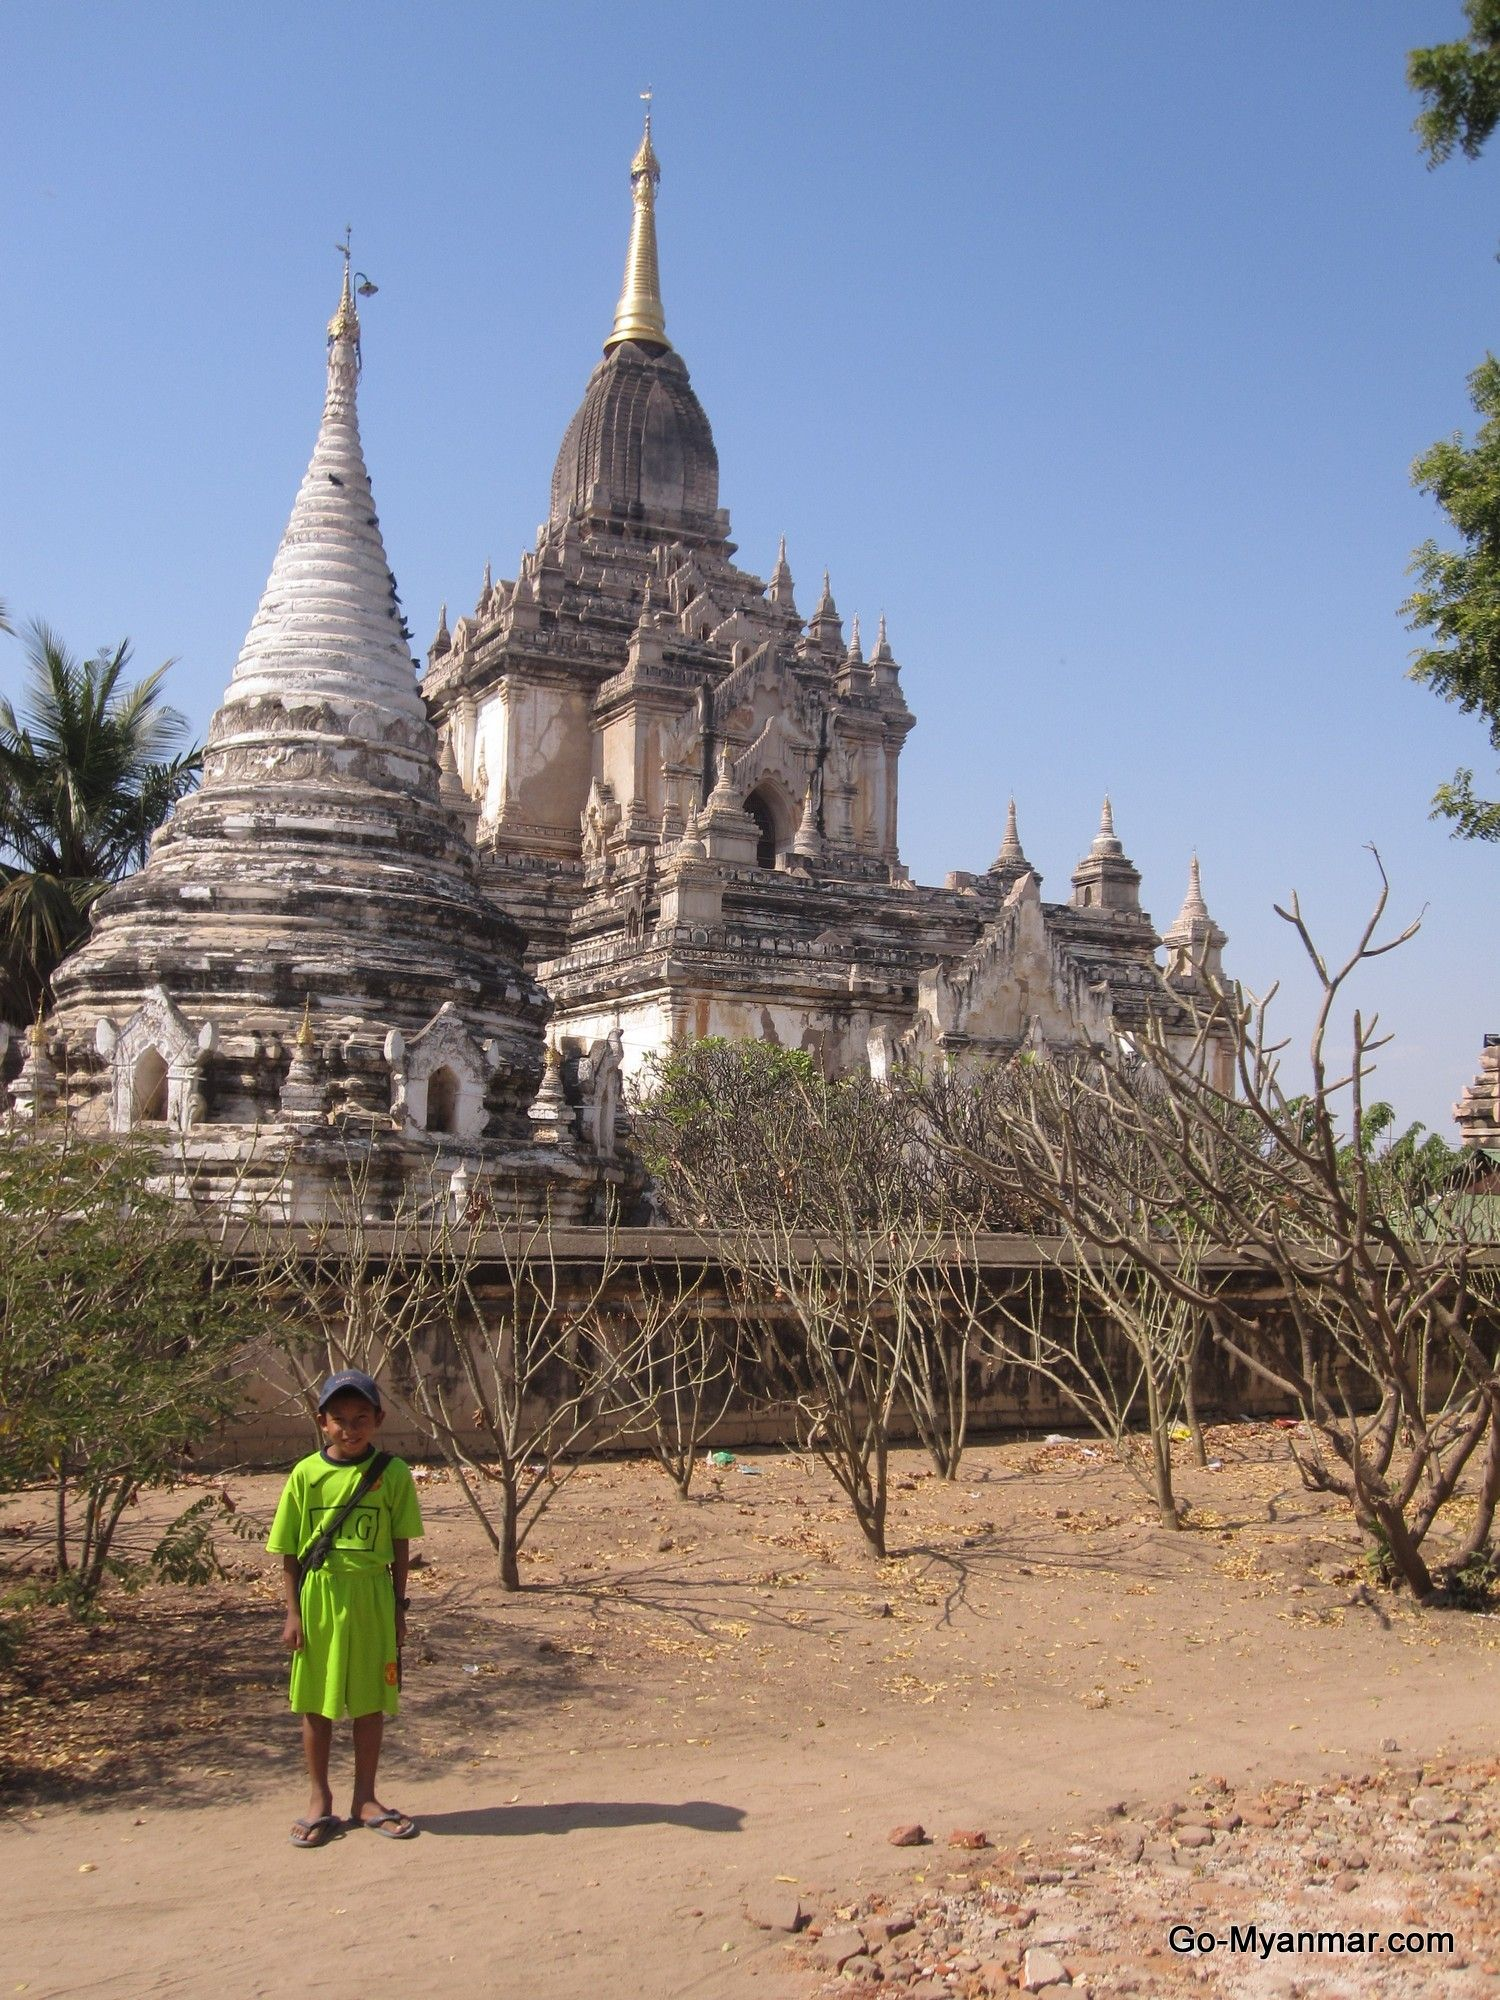 Mingala zedi pagoda bagan go here for more information on bagan go here for more information on bagan go myanmarthe temples of bagan bagan pinterest bagan temple and city altavistaventures Image collections